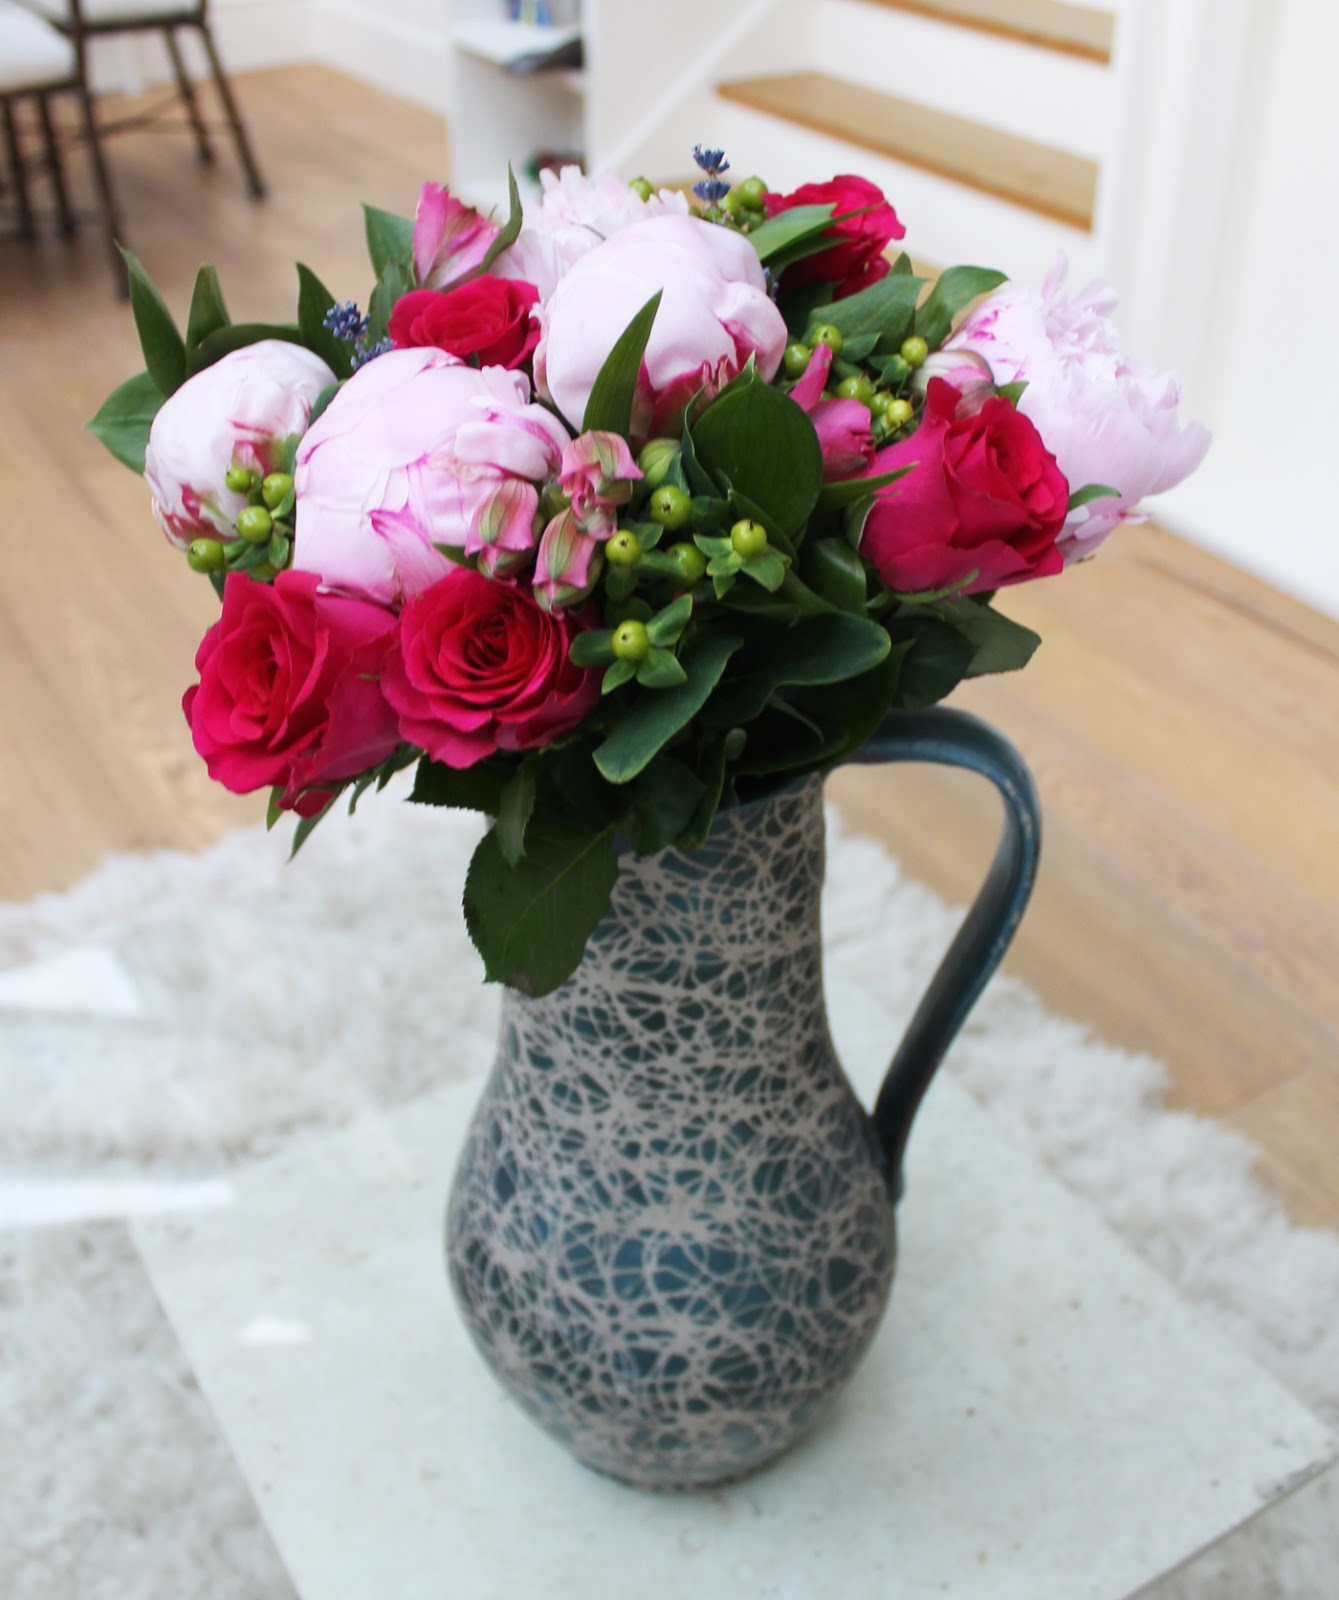 Appleyard London, Appleyard flowers, pomegranate rose and pink peony bouquet